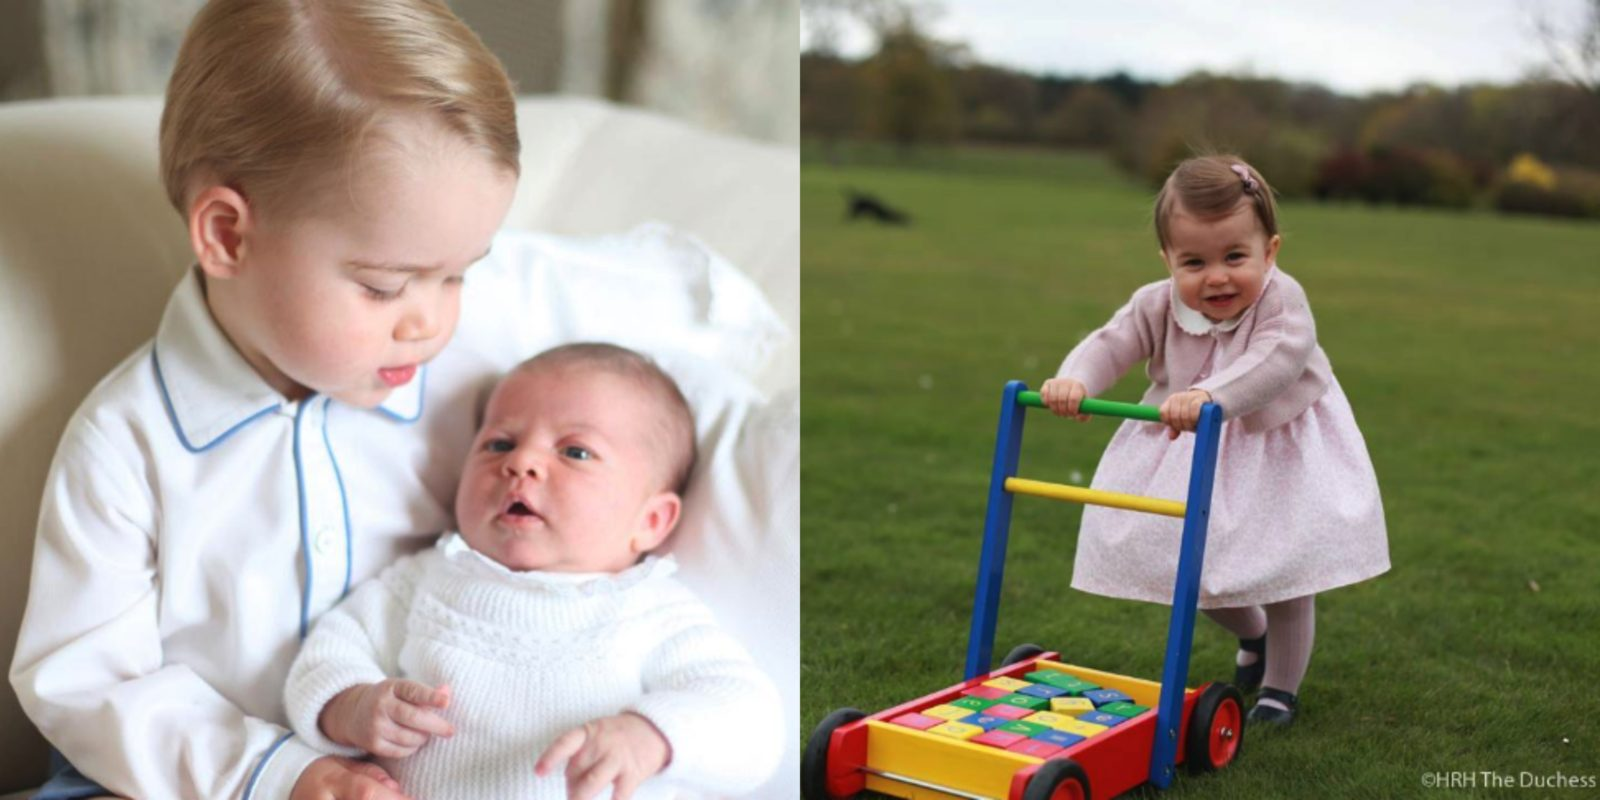 Princess Charlotte as a baby with her brother George, and at one year old. Source: Instagram/Kensington Royal.